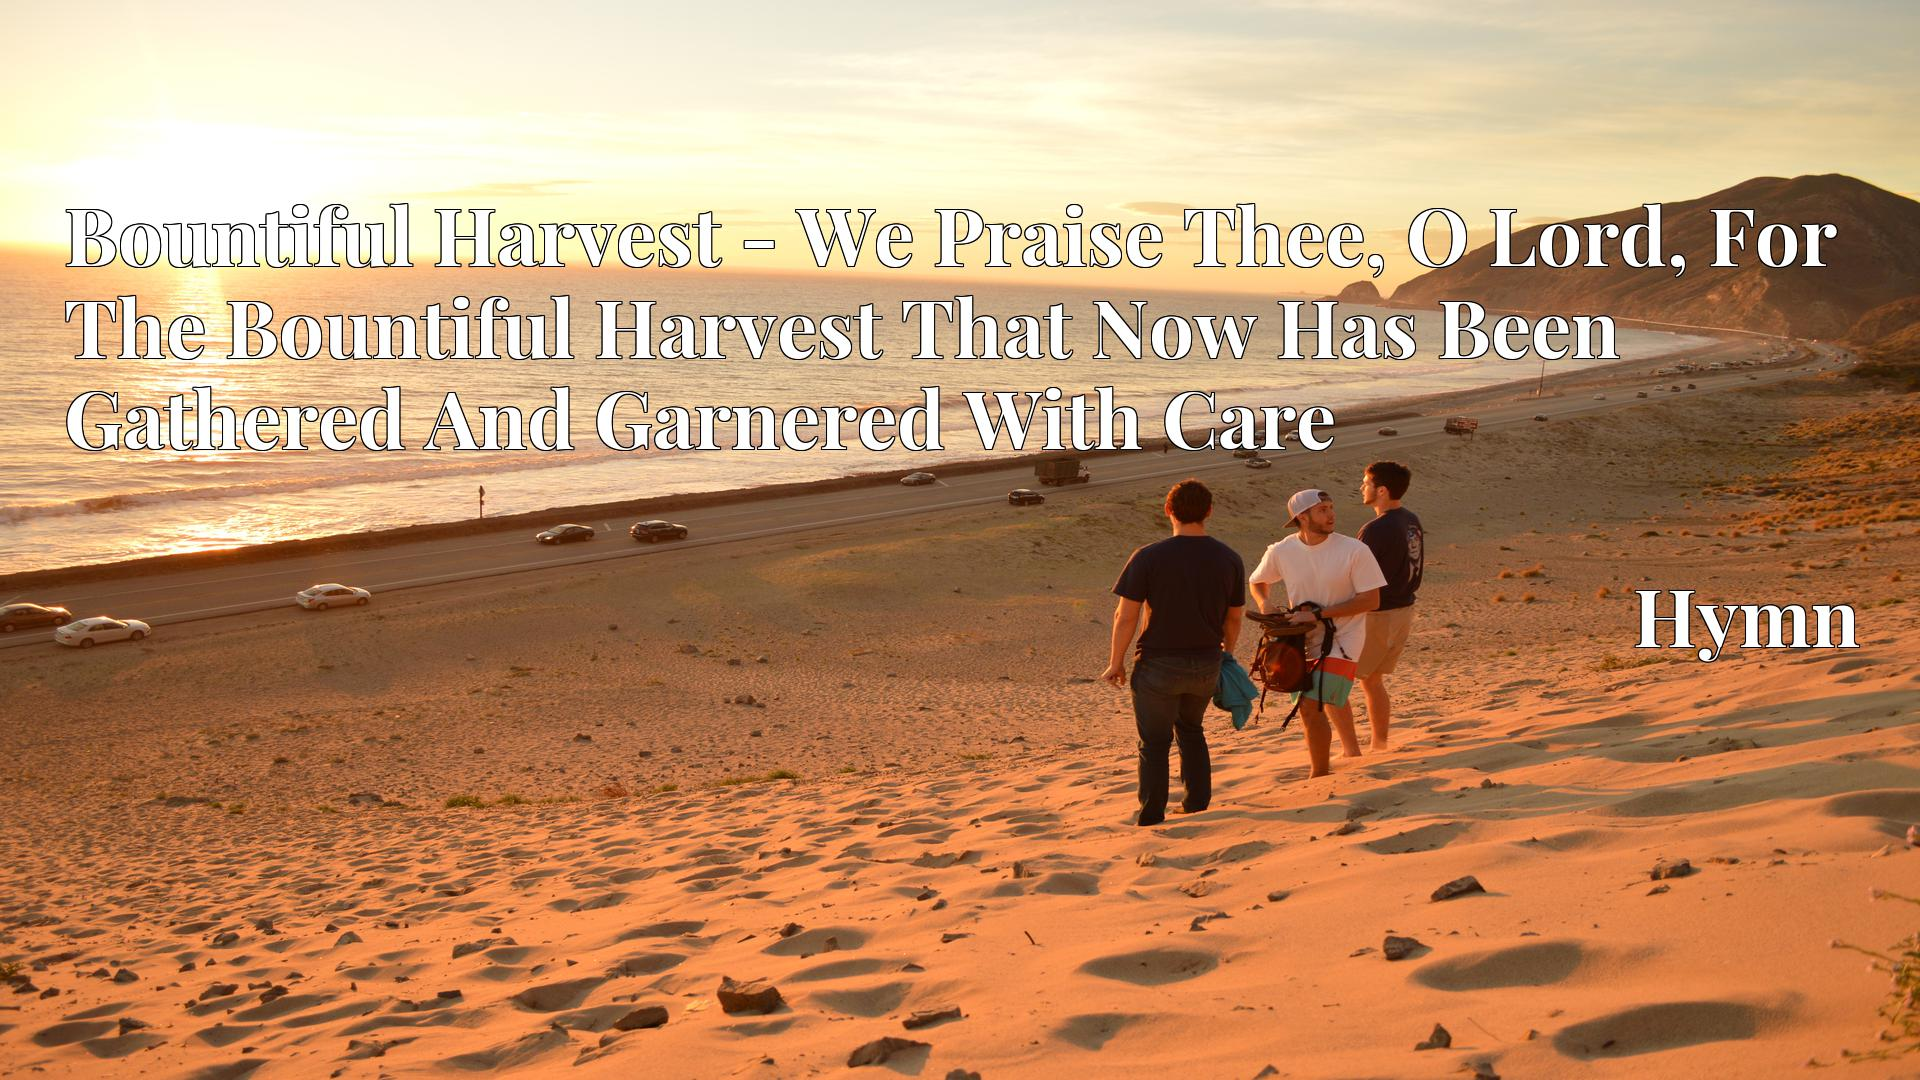 Bountiful Harvest - We Praise Thee, O Lord, For The Bountiful Harvest That Now Has Been Gathered And Garnered With Care Hymn